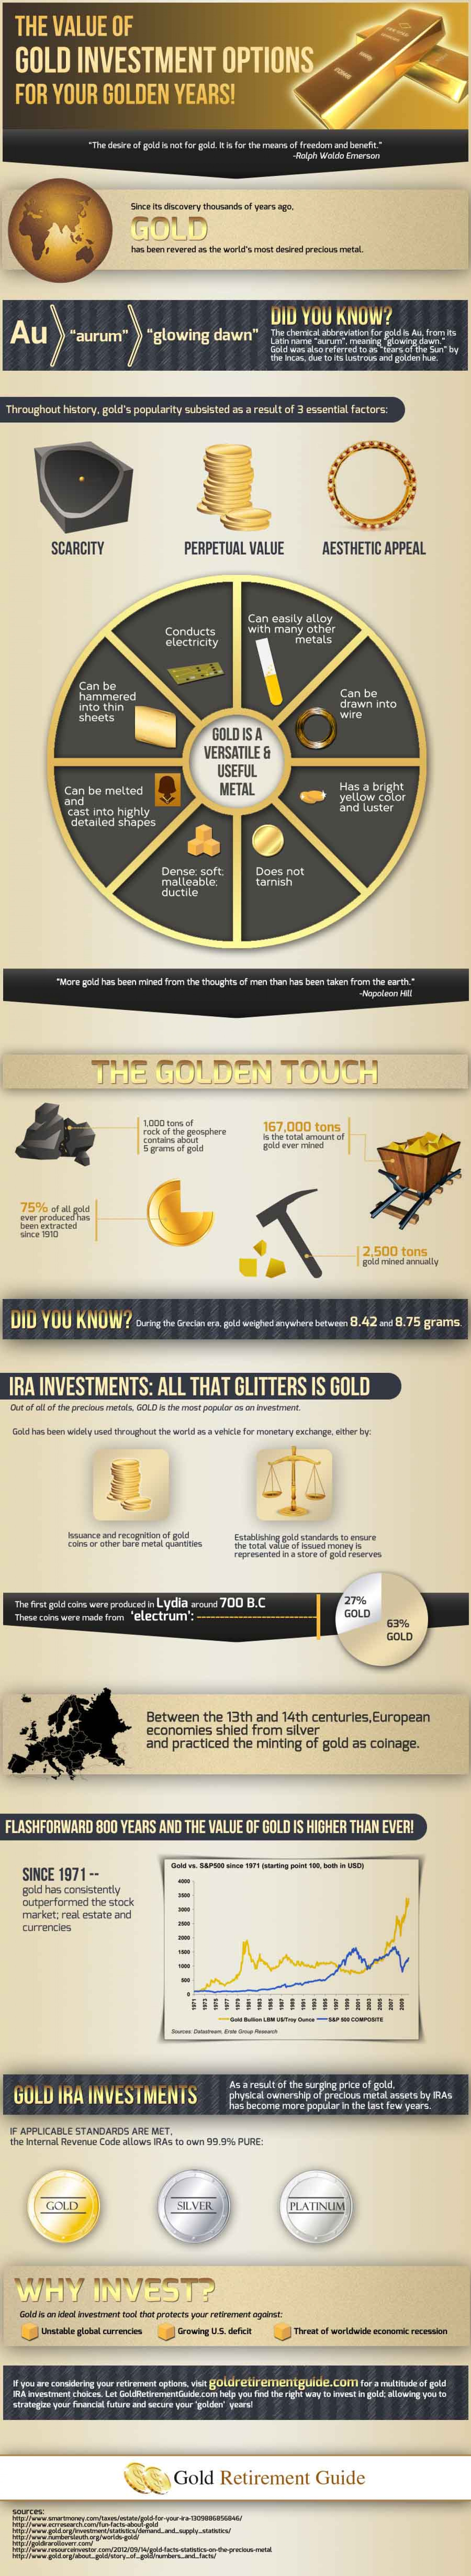 The Value of Gold Investment Option For Your Golden Years Infographic